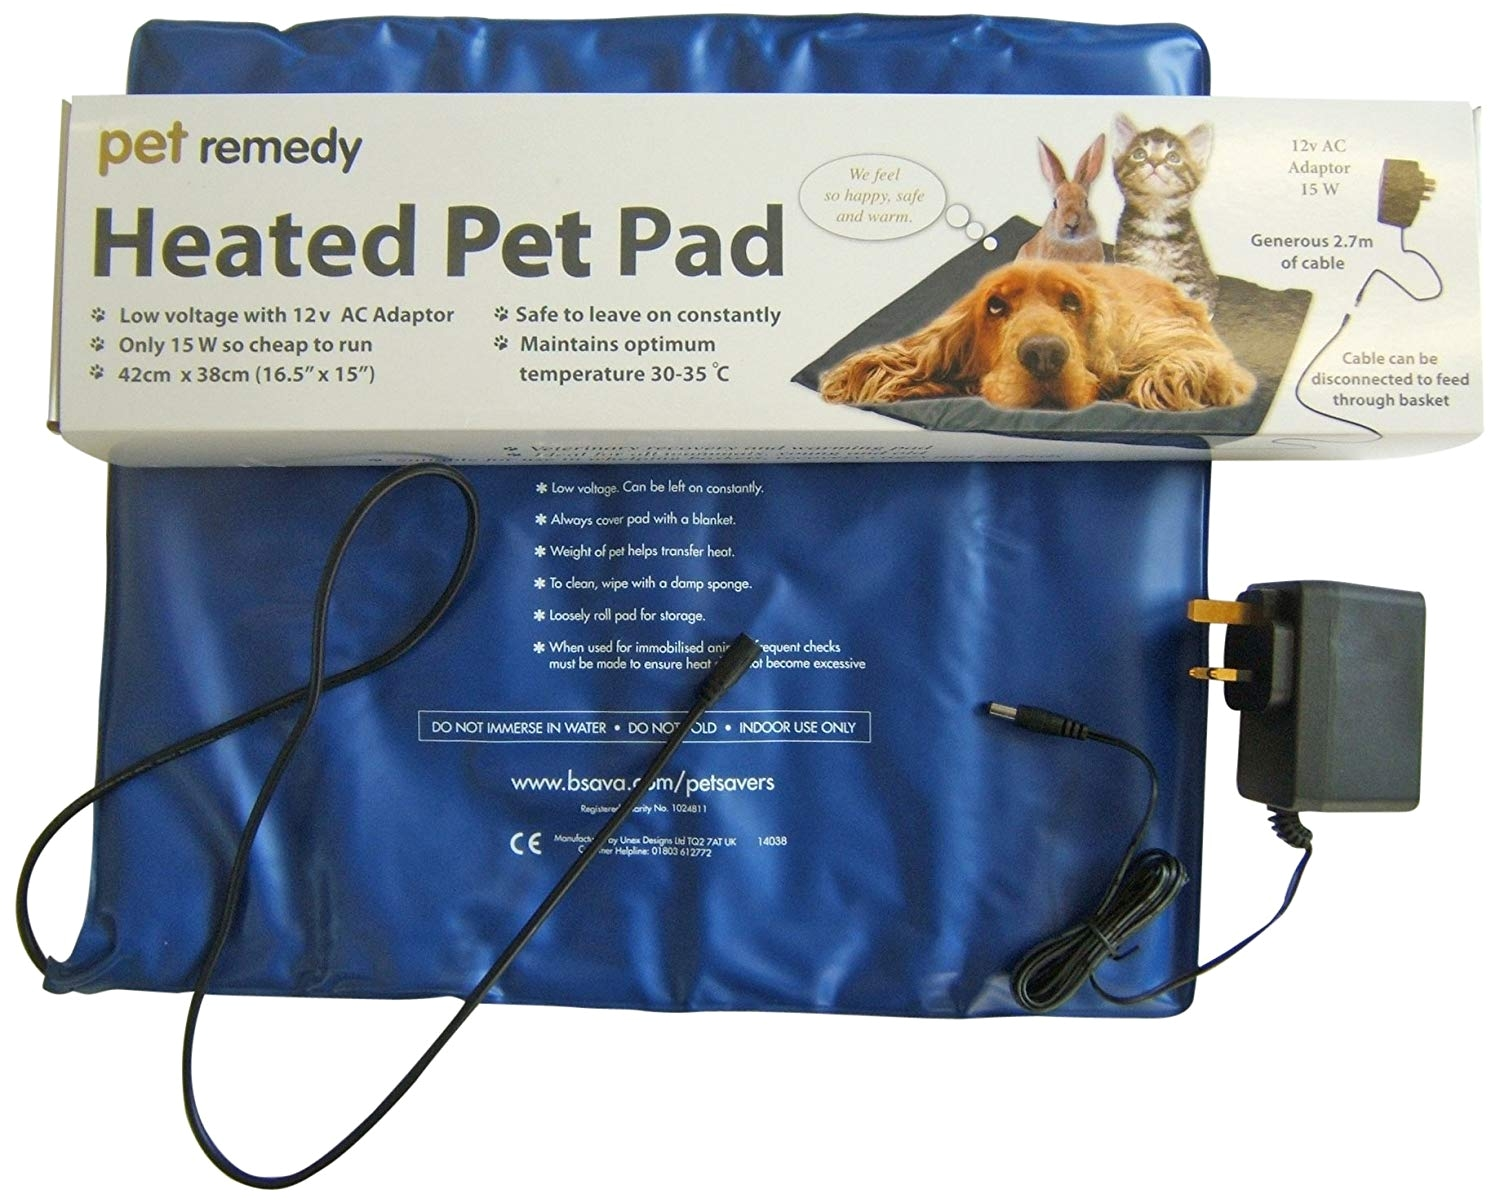 amazon com pet remedy low voltage electrically heated pet pad pet health care supplies pet supplies